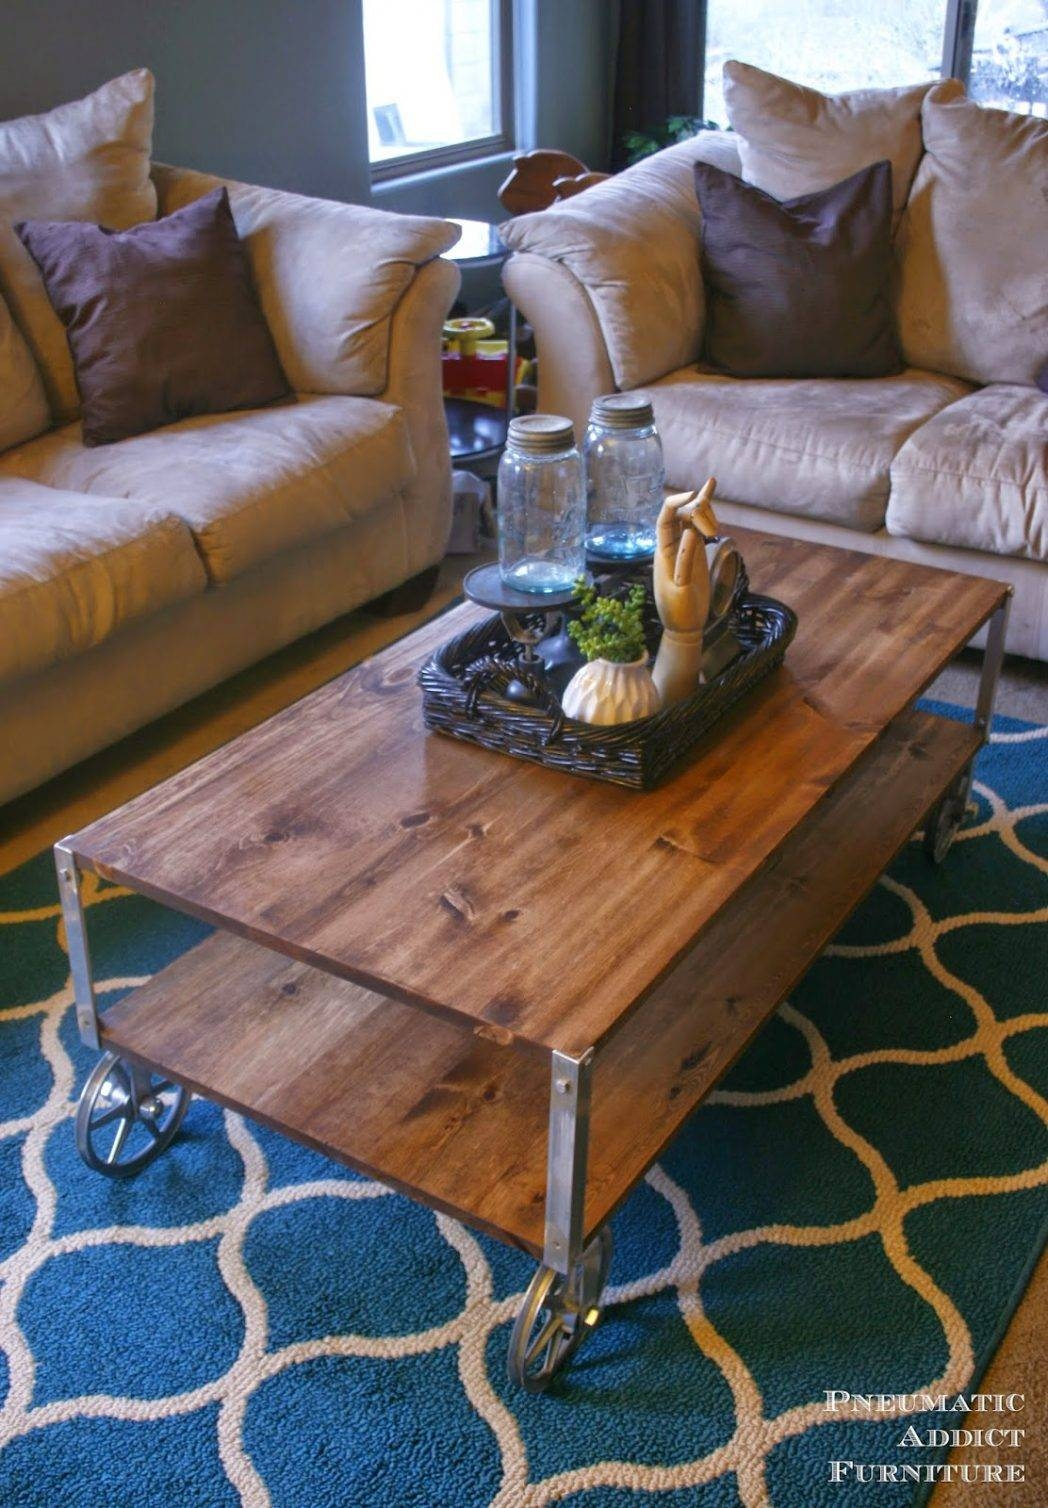 30 Inch Coffee Table Magnussen Presidential Furniture Aiden Aidan With Regard To Aiden Coffee Tables (Photo 5 of 30)